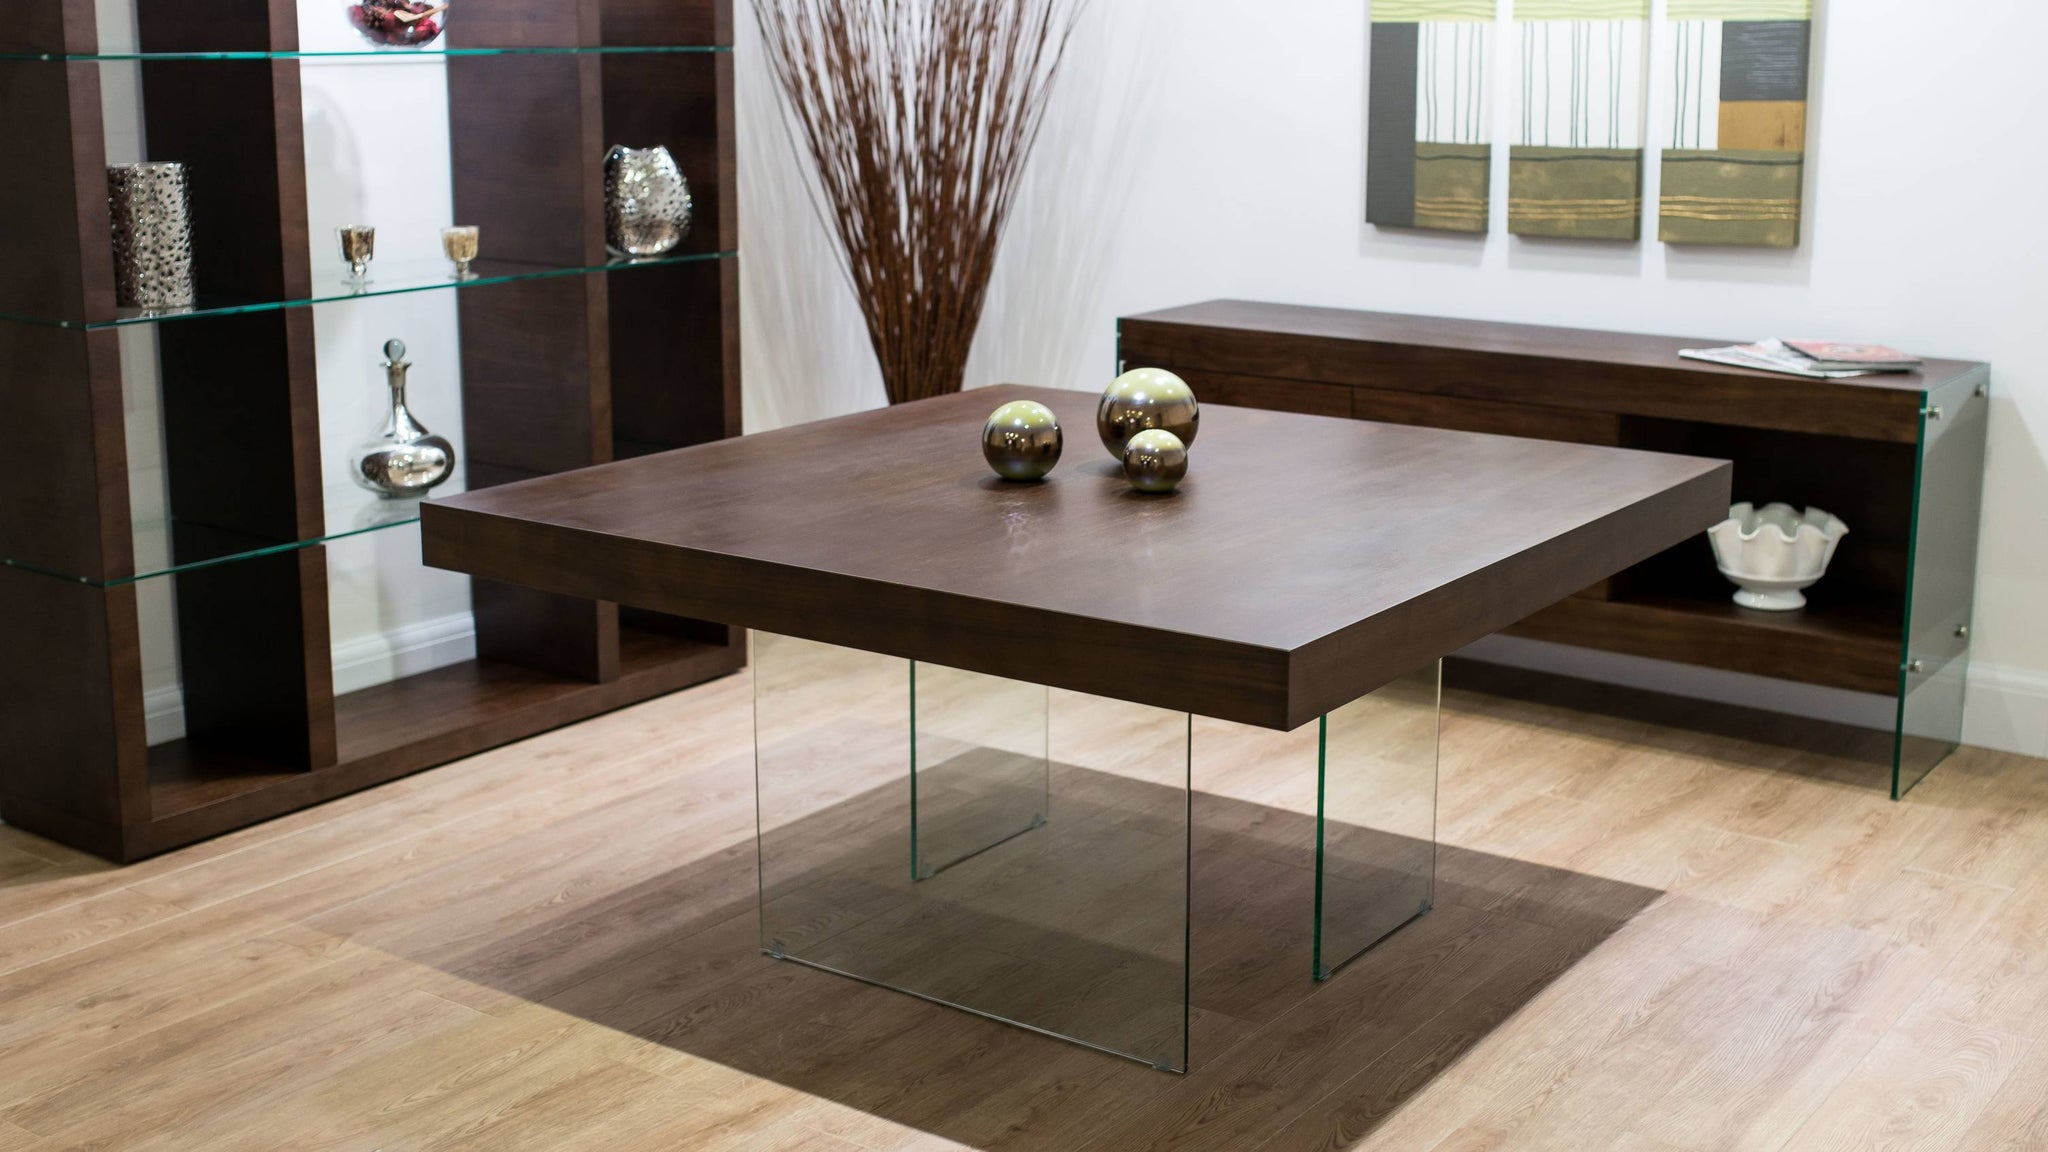 Large Dark Wood Dining Table with Glass Legs